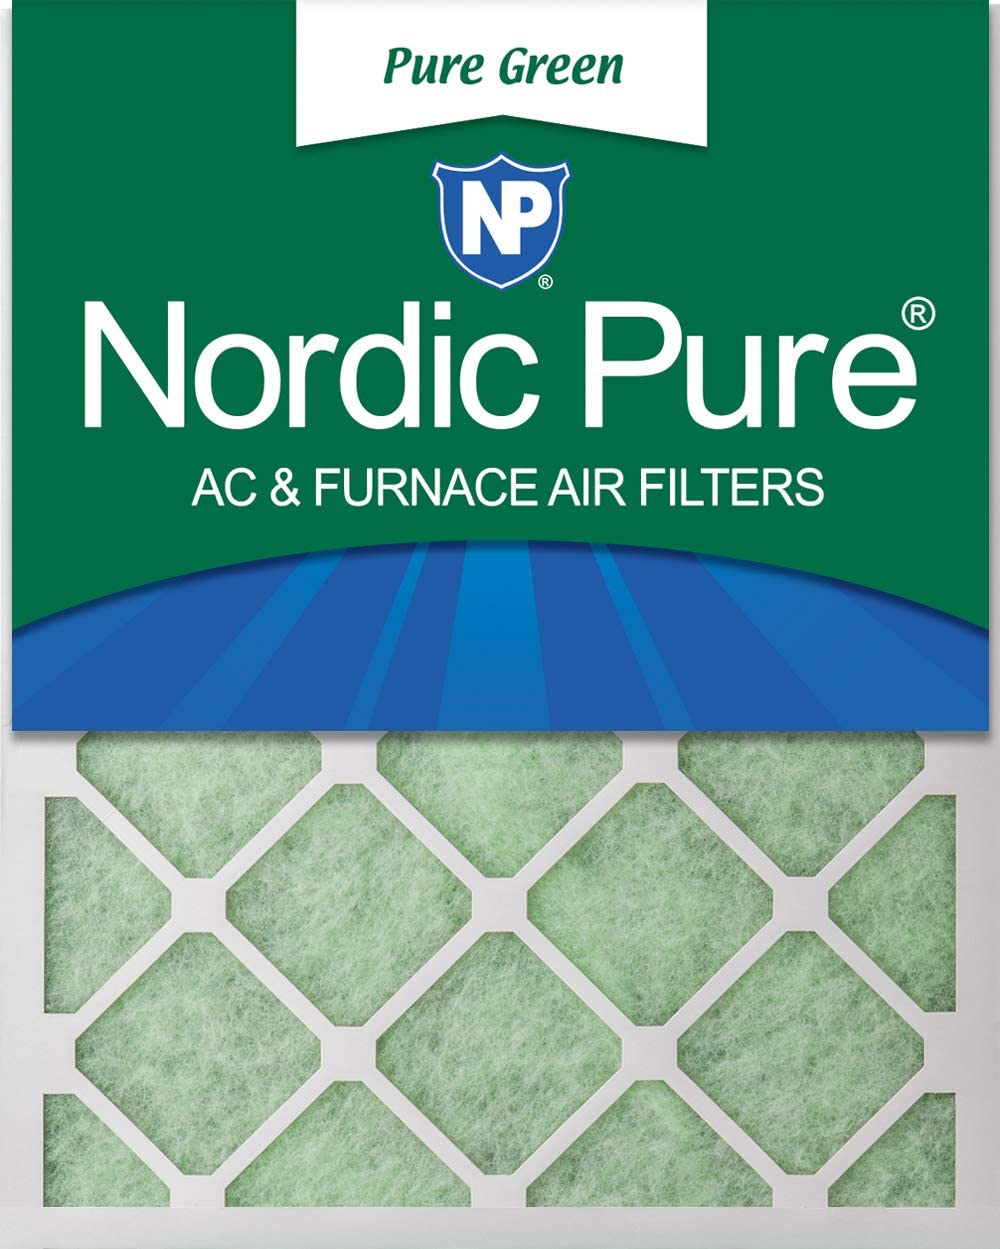 Nordic Pure 20x25x1 Pure Green Eco-Friendly AC Furnace Air Filters, 3 PACK, 3 piece